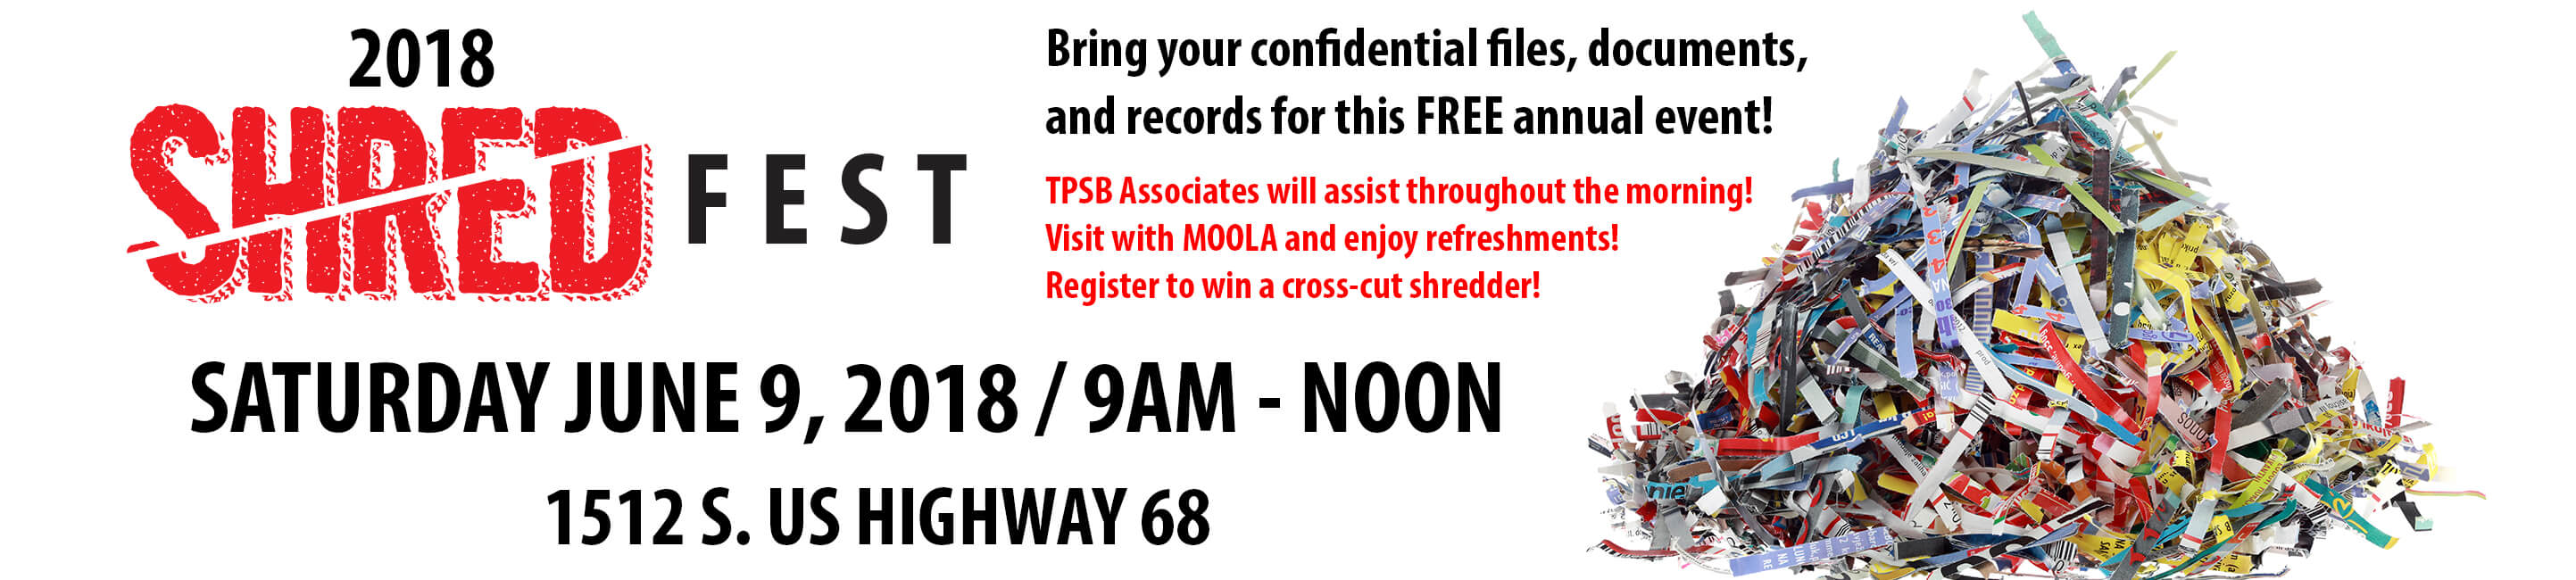 The peoples savings bank learn 2018 shred fest june 9 2018 9am noon 1512 s us highway 1betcityfo Choice Image